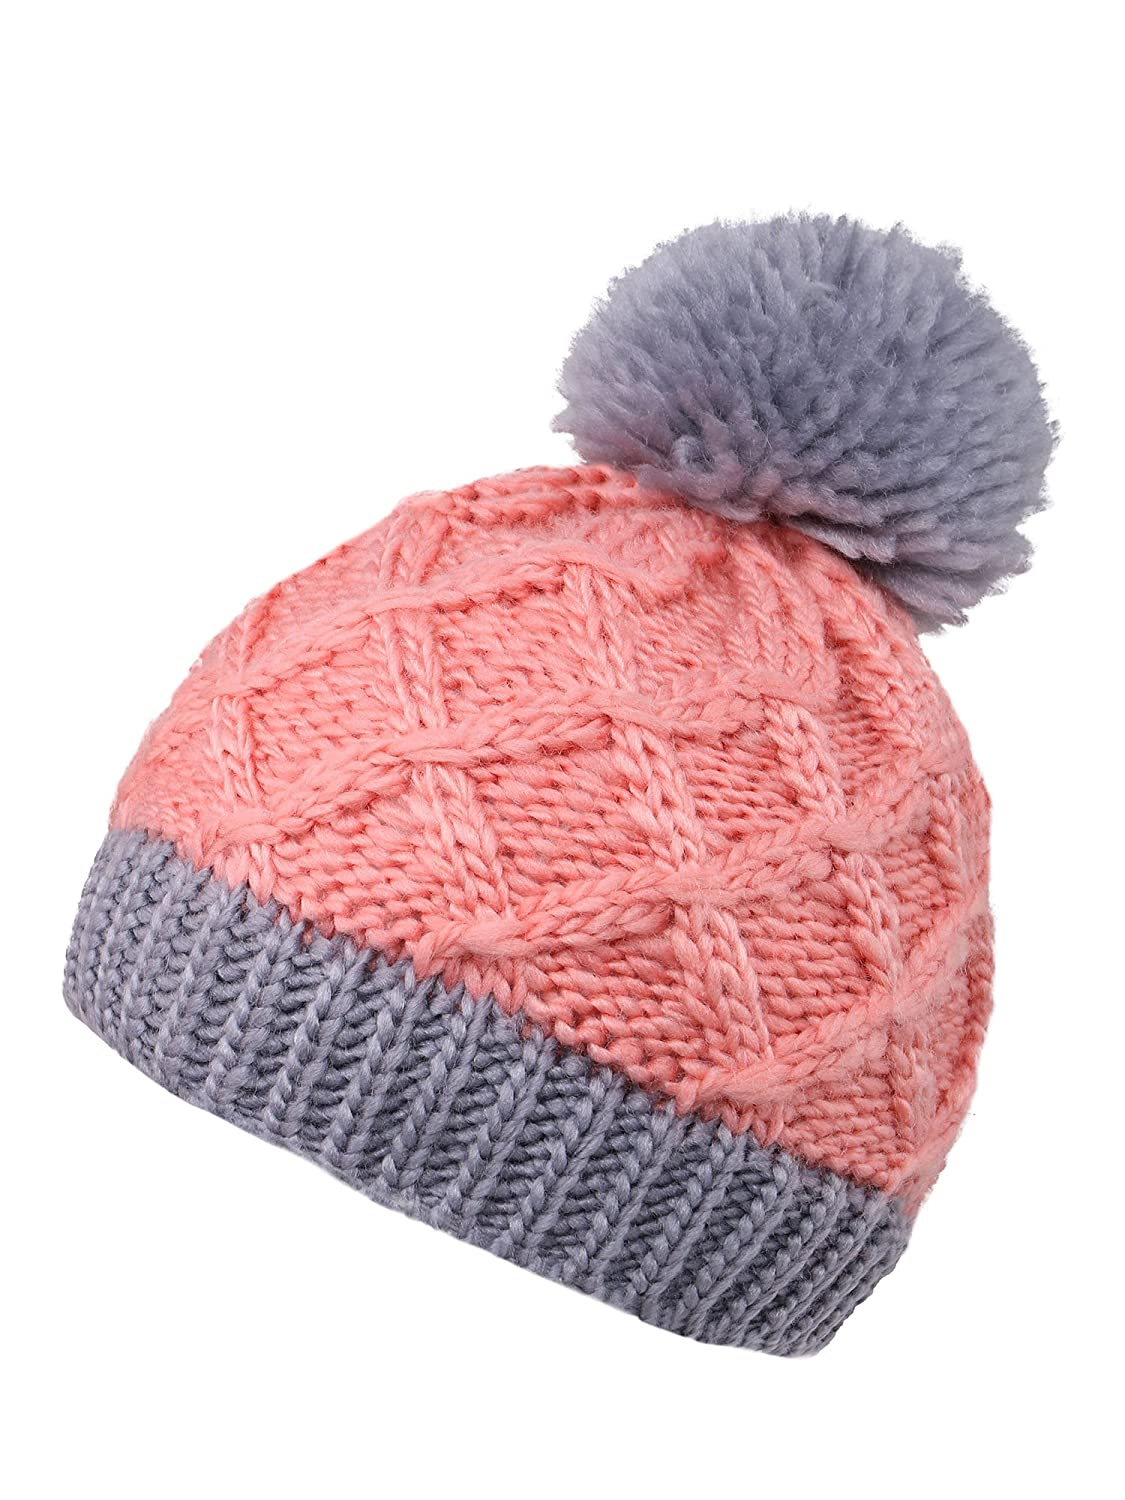 KEA KEA Kids Cable Knit Beanie Children's Winter Hat Boys/Girls Winter Cap Watermelon